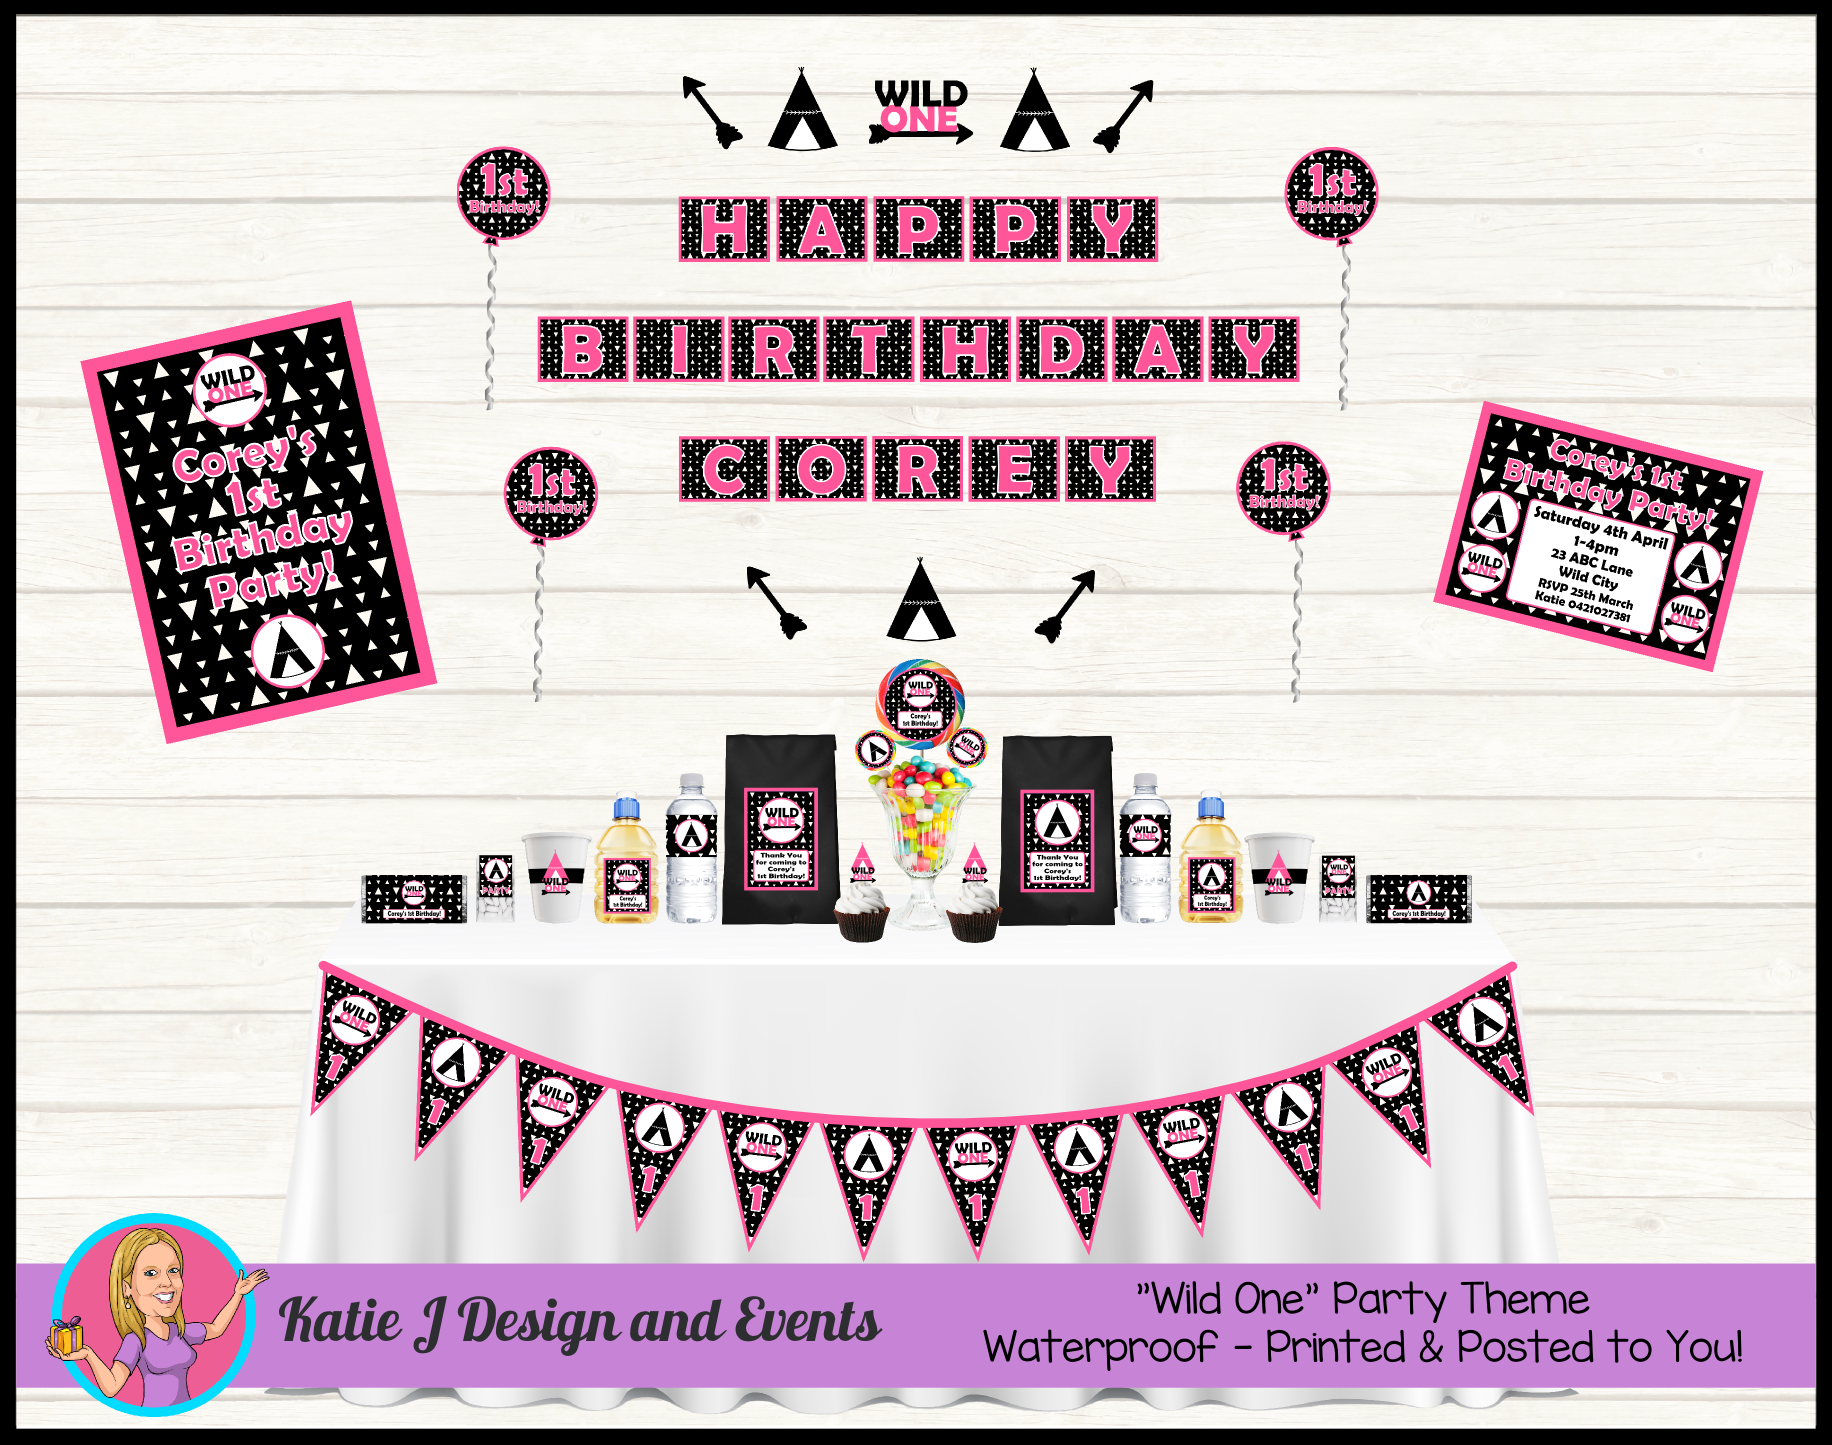 Monochrome Wild One Personalised Birthday Party Decorations Supplies Packs Shop Online Australia Banners Bunting Wall Display